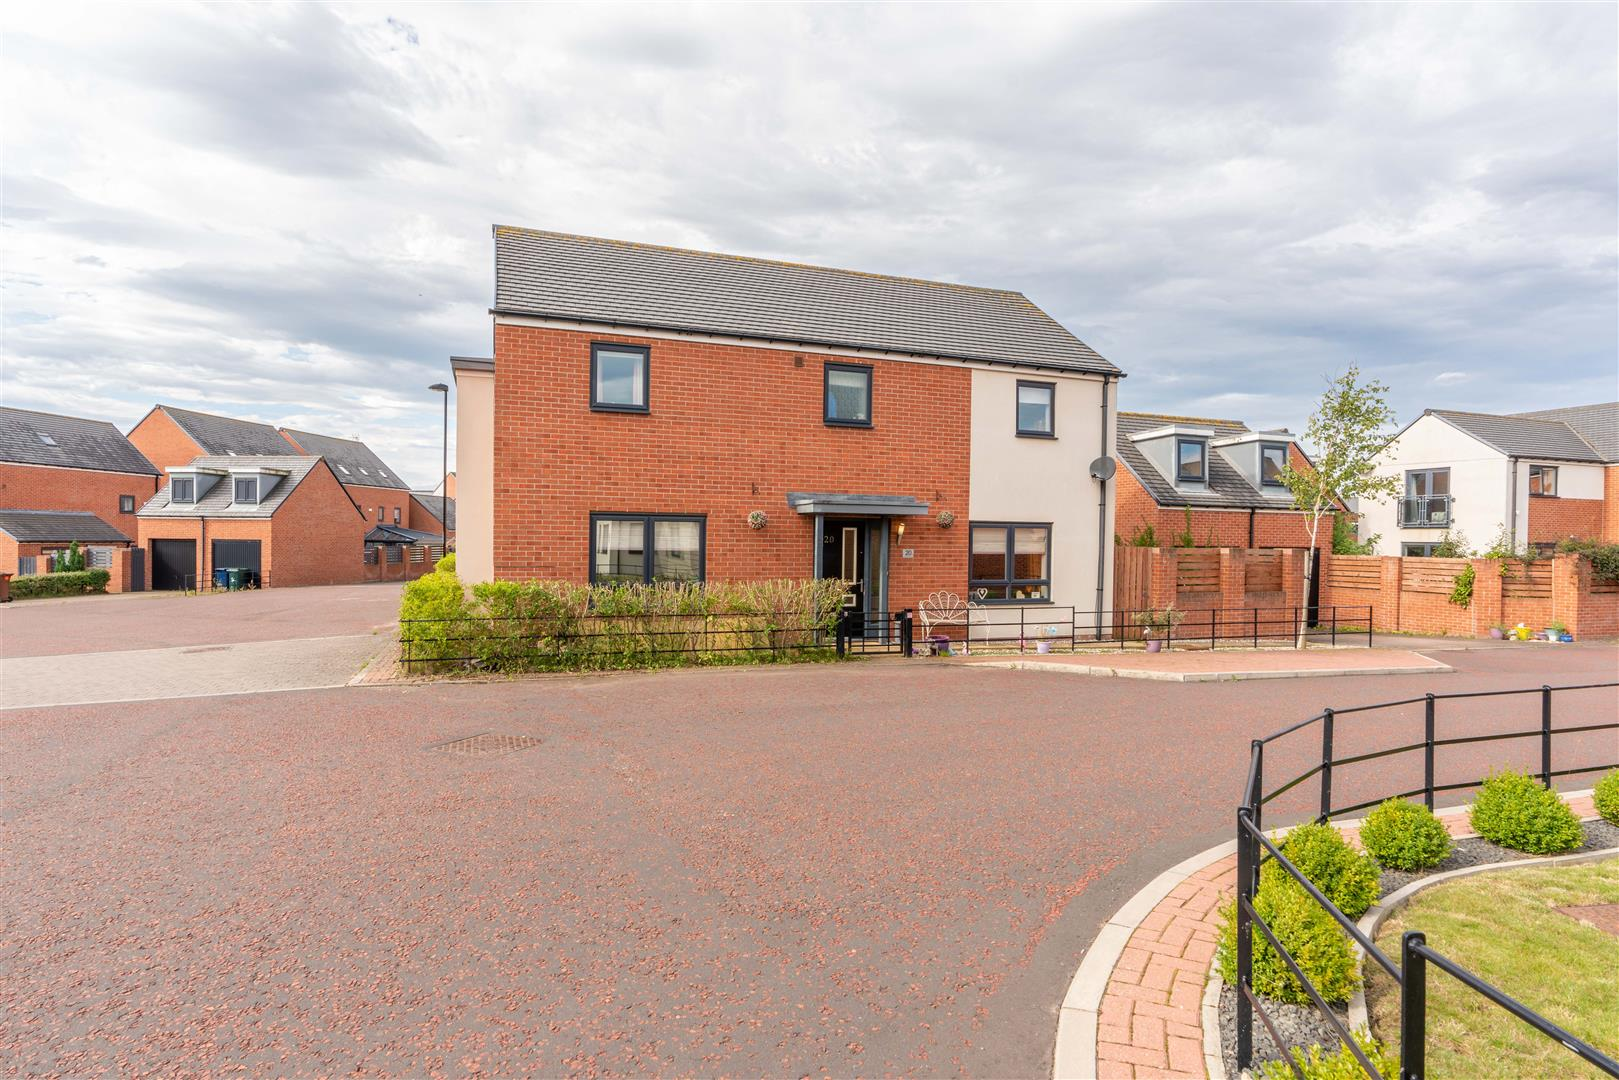 5 bed detached house for sale in Kimmerstone Road, Great Park - Property Image 1